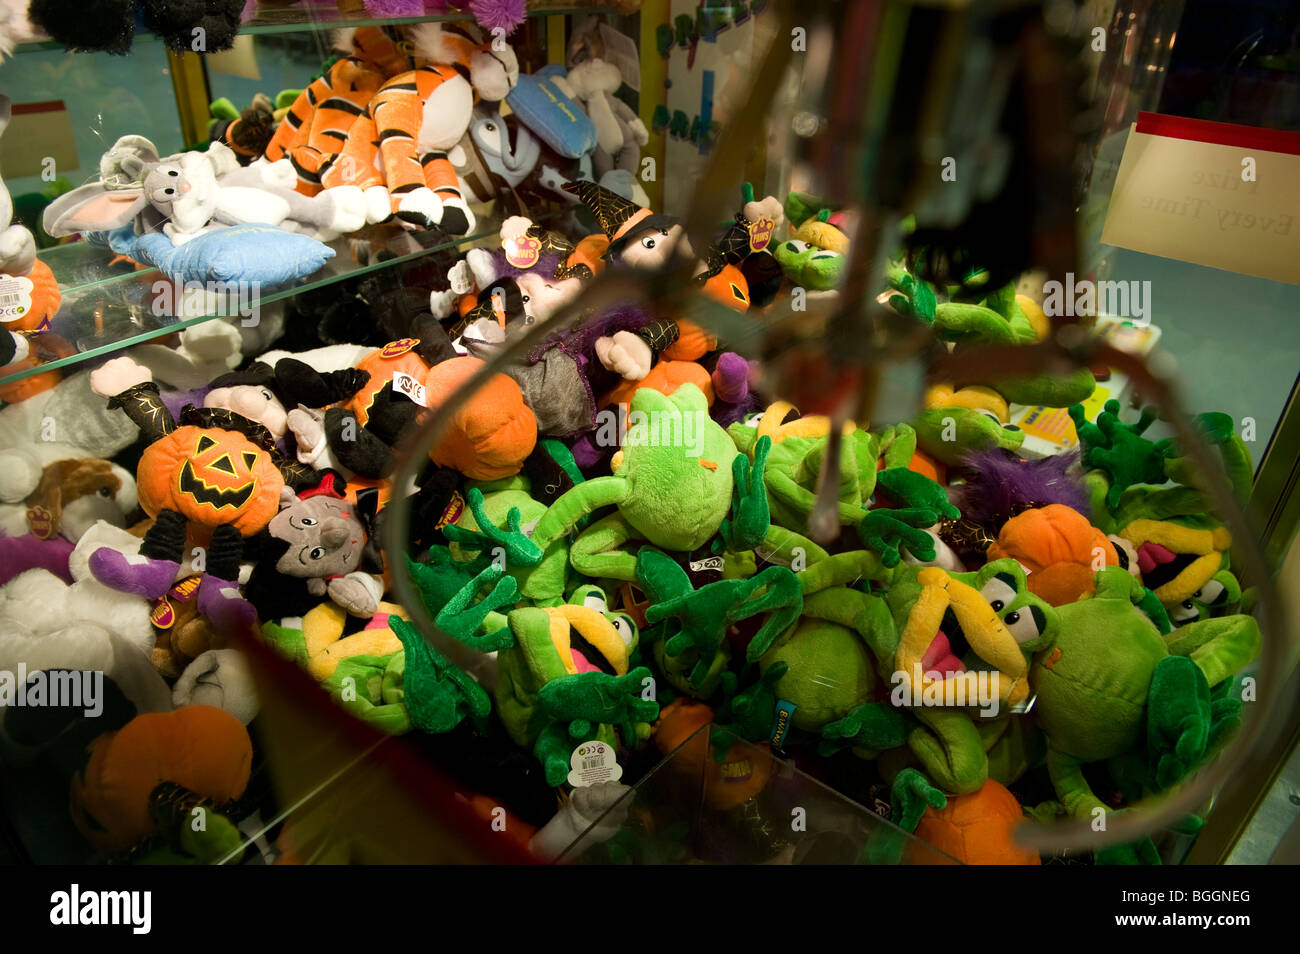 Soft toys as prizes in a grabber machine, where toys can be won for money. - Stock Image